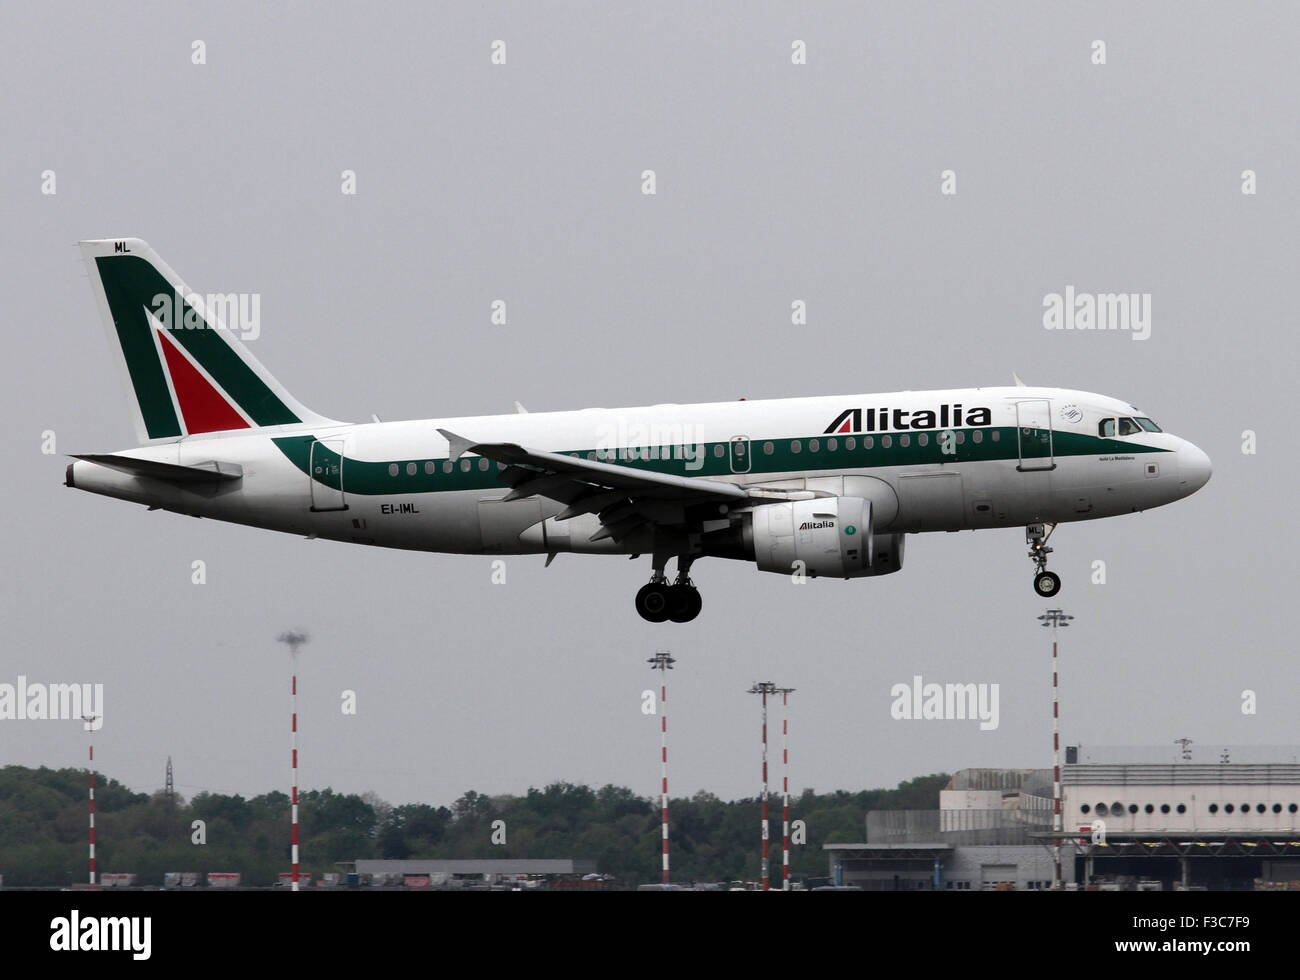 Alitalia Airbus A319. Photographed at Linate airport, Milan, Italy - Stock Image